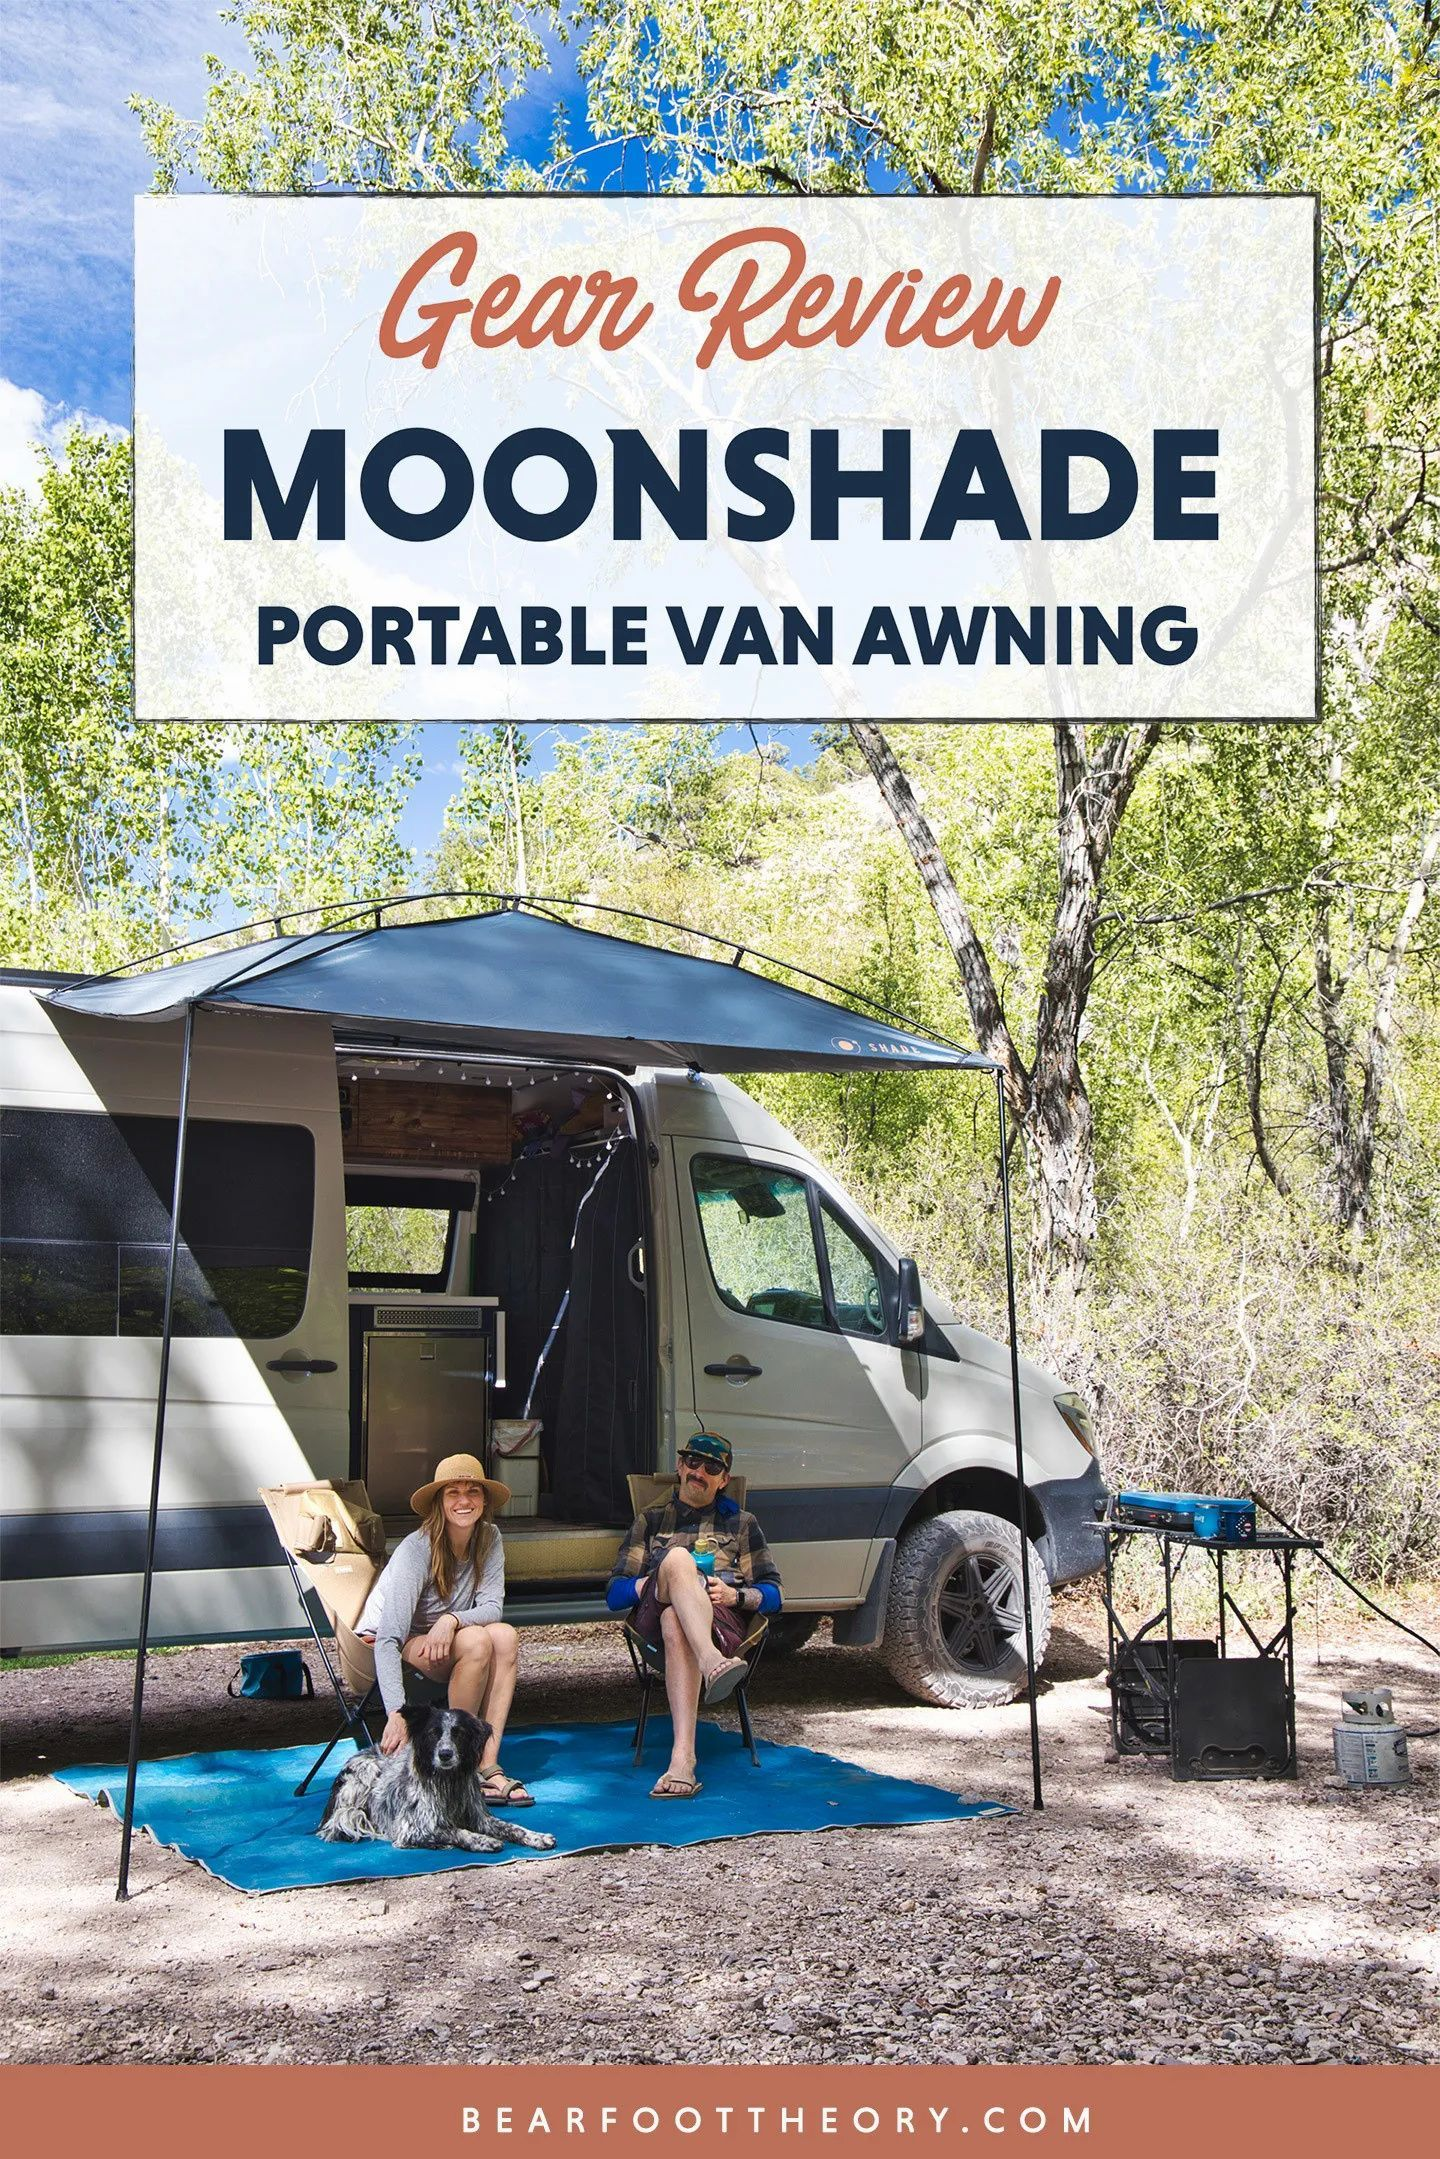 Moonshade Review A Portable Budget Friendly Van Awning Bearfoot Theory In 2020 Outdoor Gear Review Van Van Life